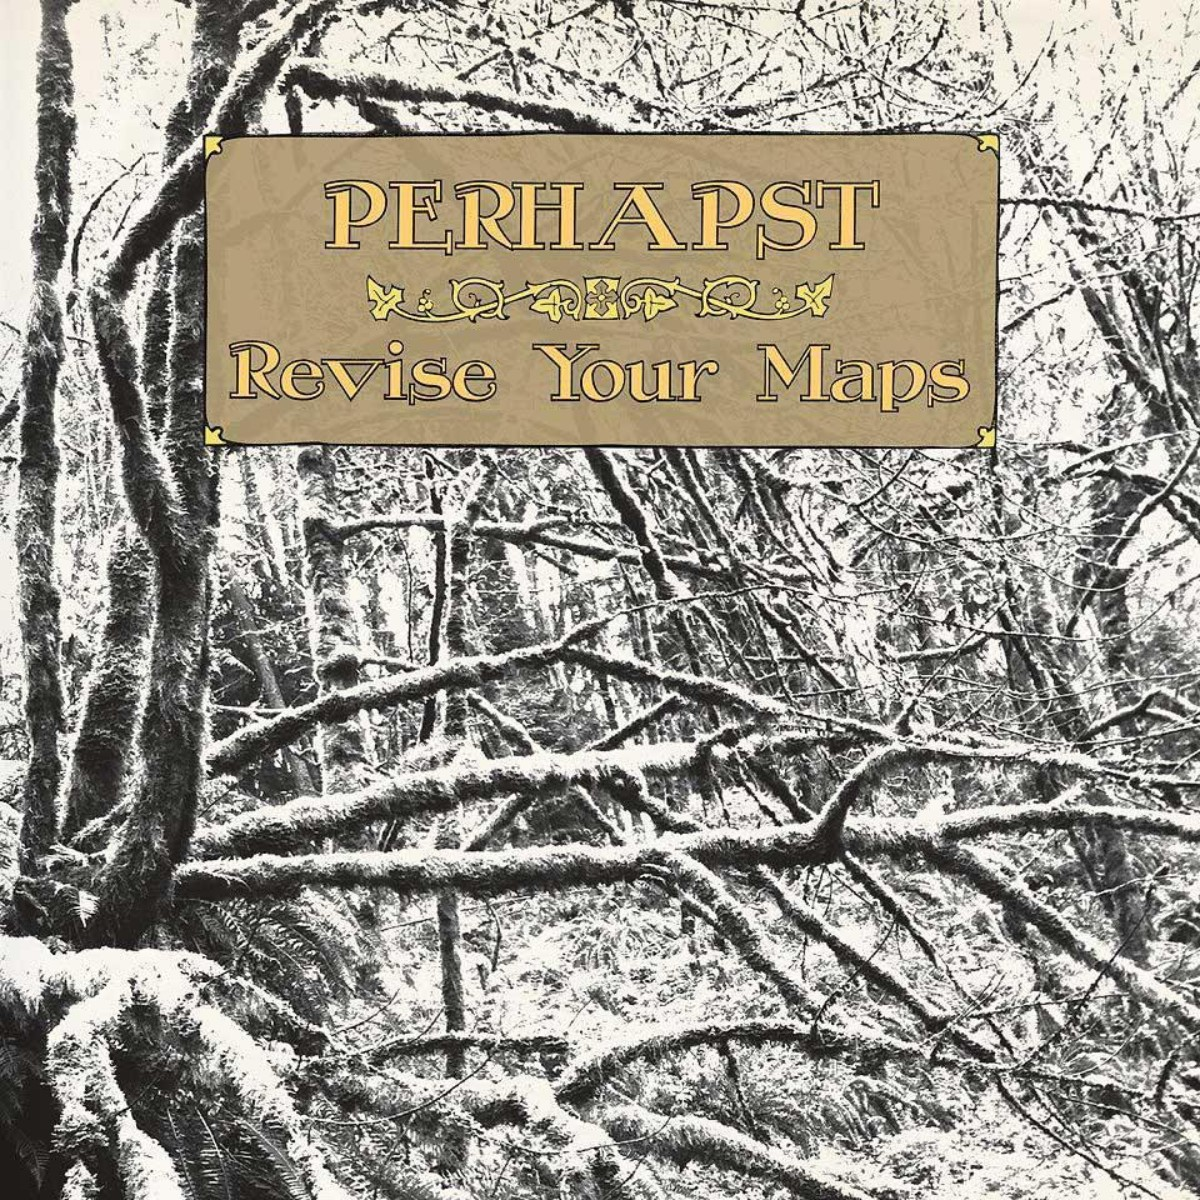 Perhapst 'Revise Your Maps' CD